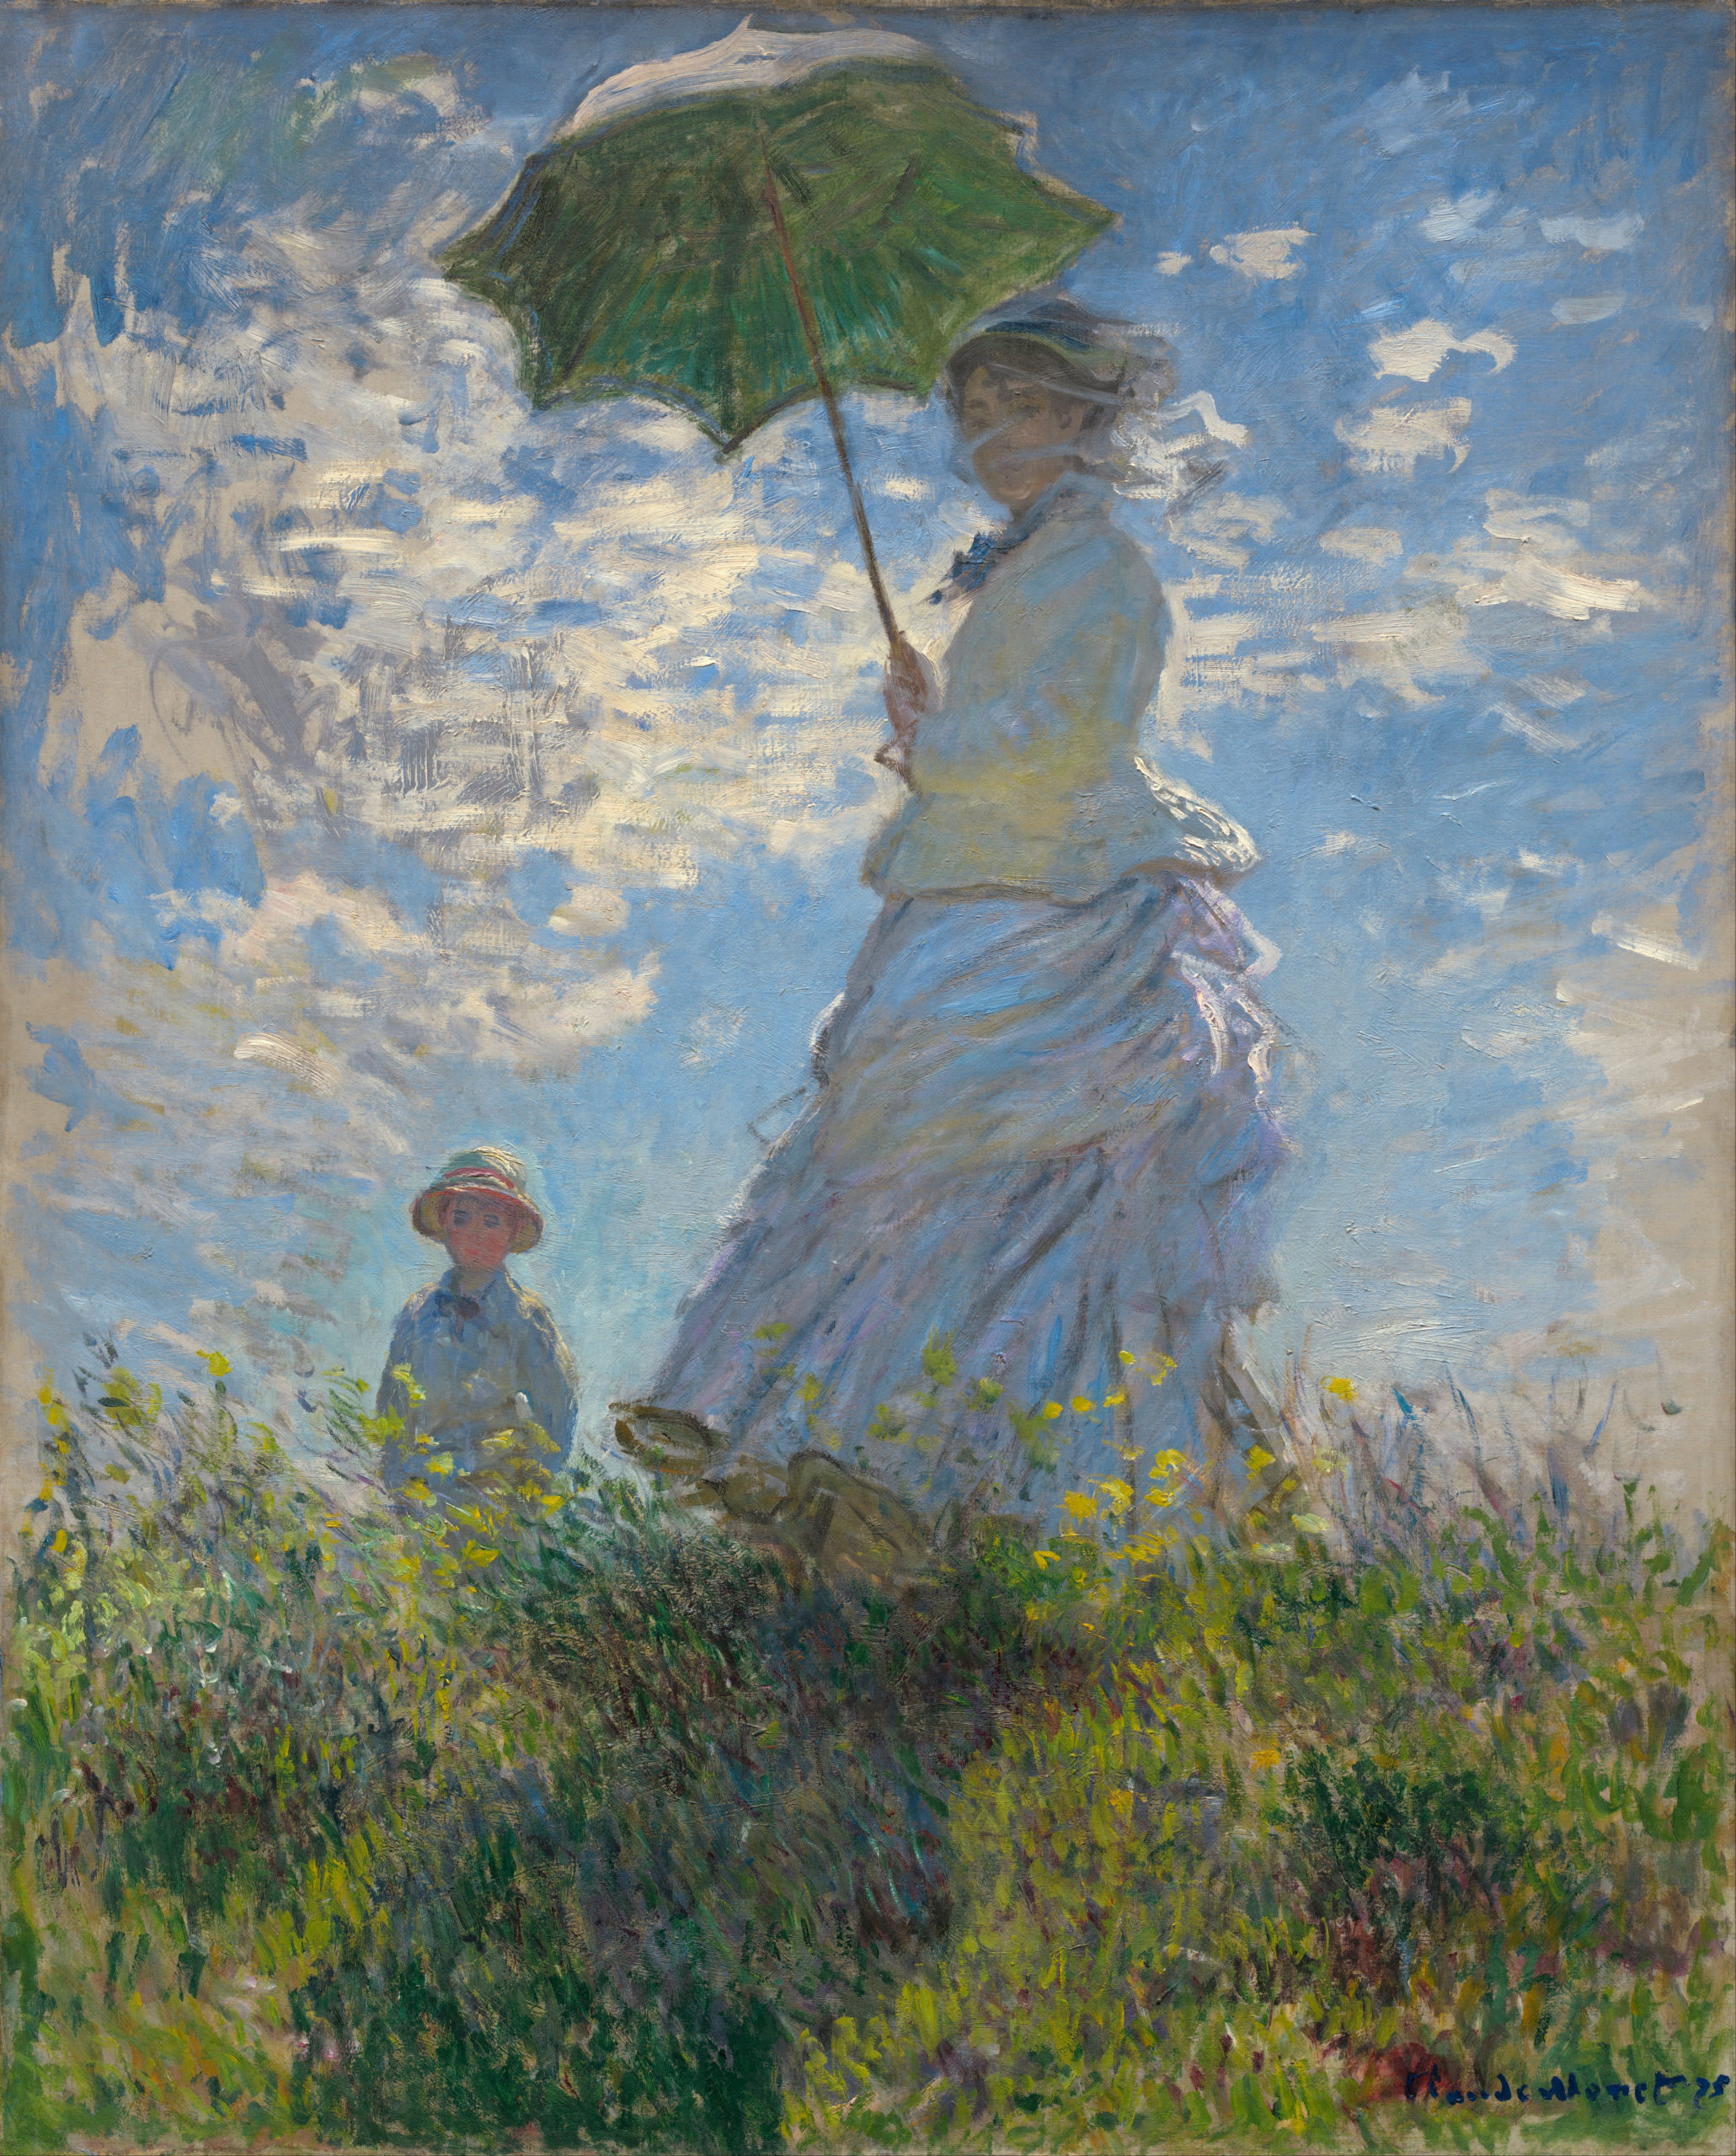 painting by Monet, woman with a parasol. She stands in a windy field with clouds.